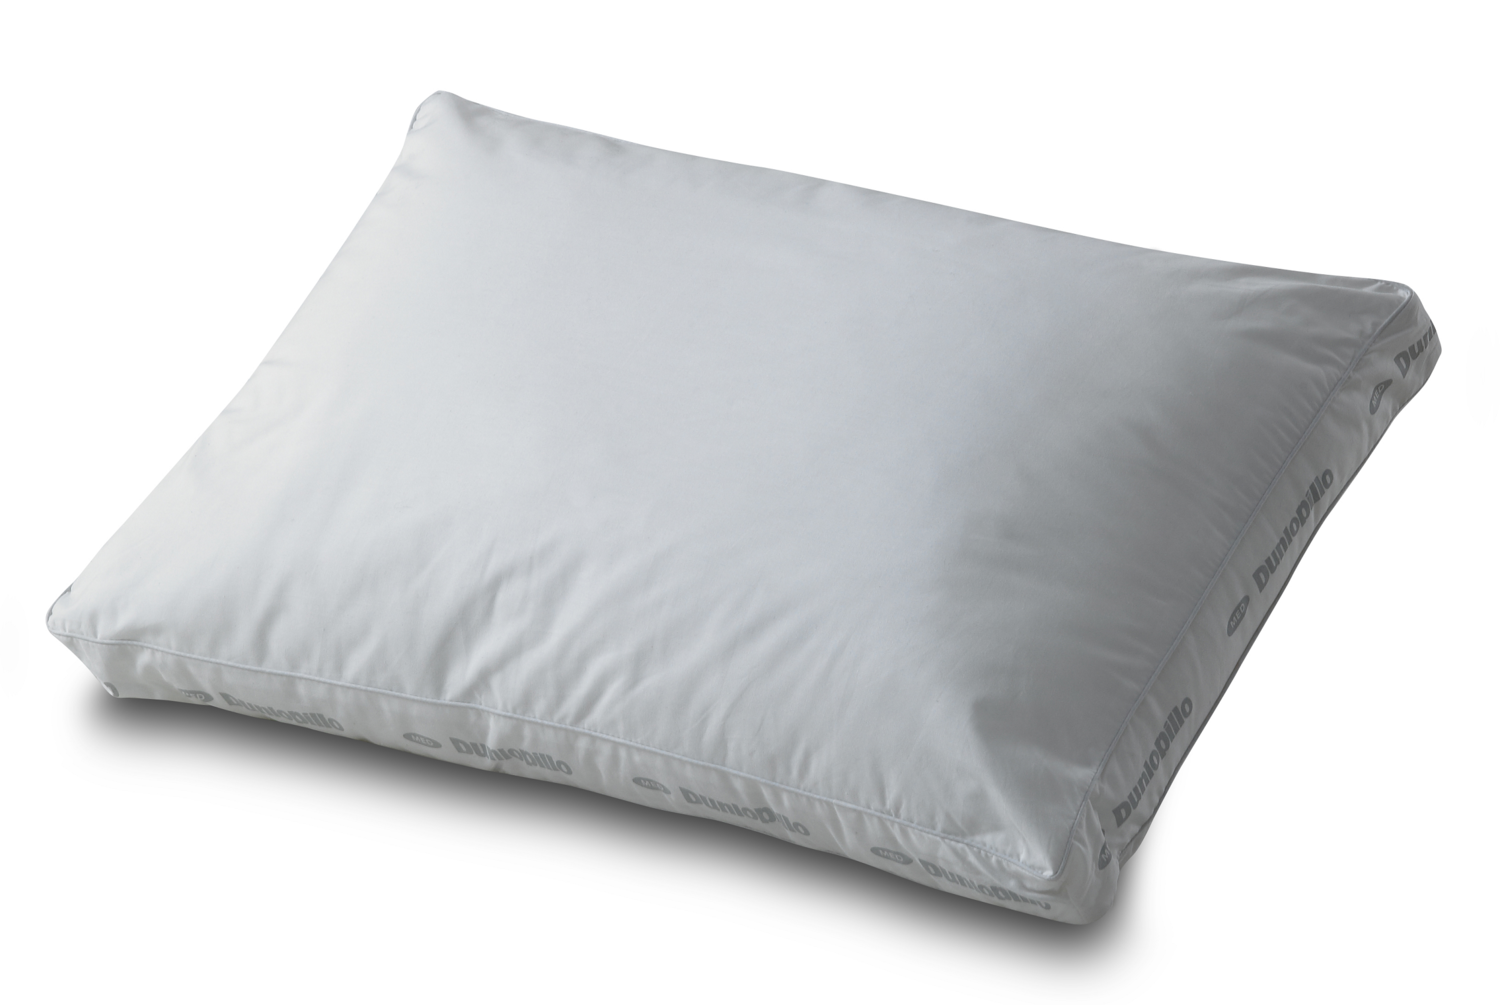 Dunlopillo Celeste Latex Layer Pillow Medium